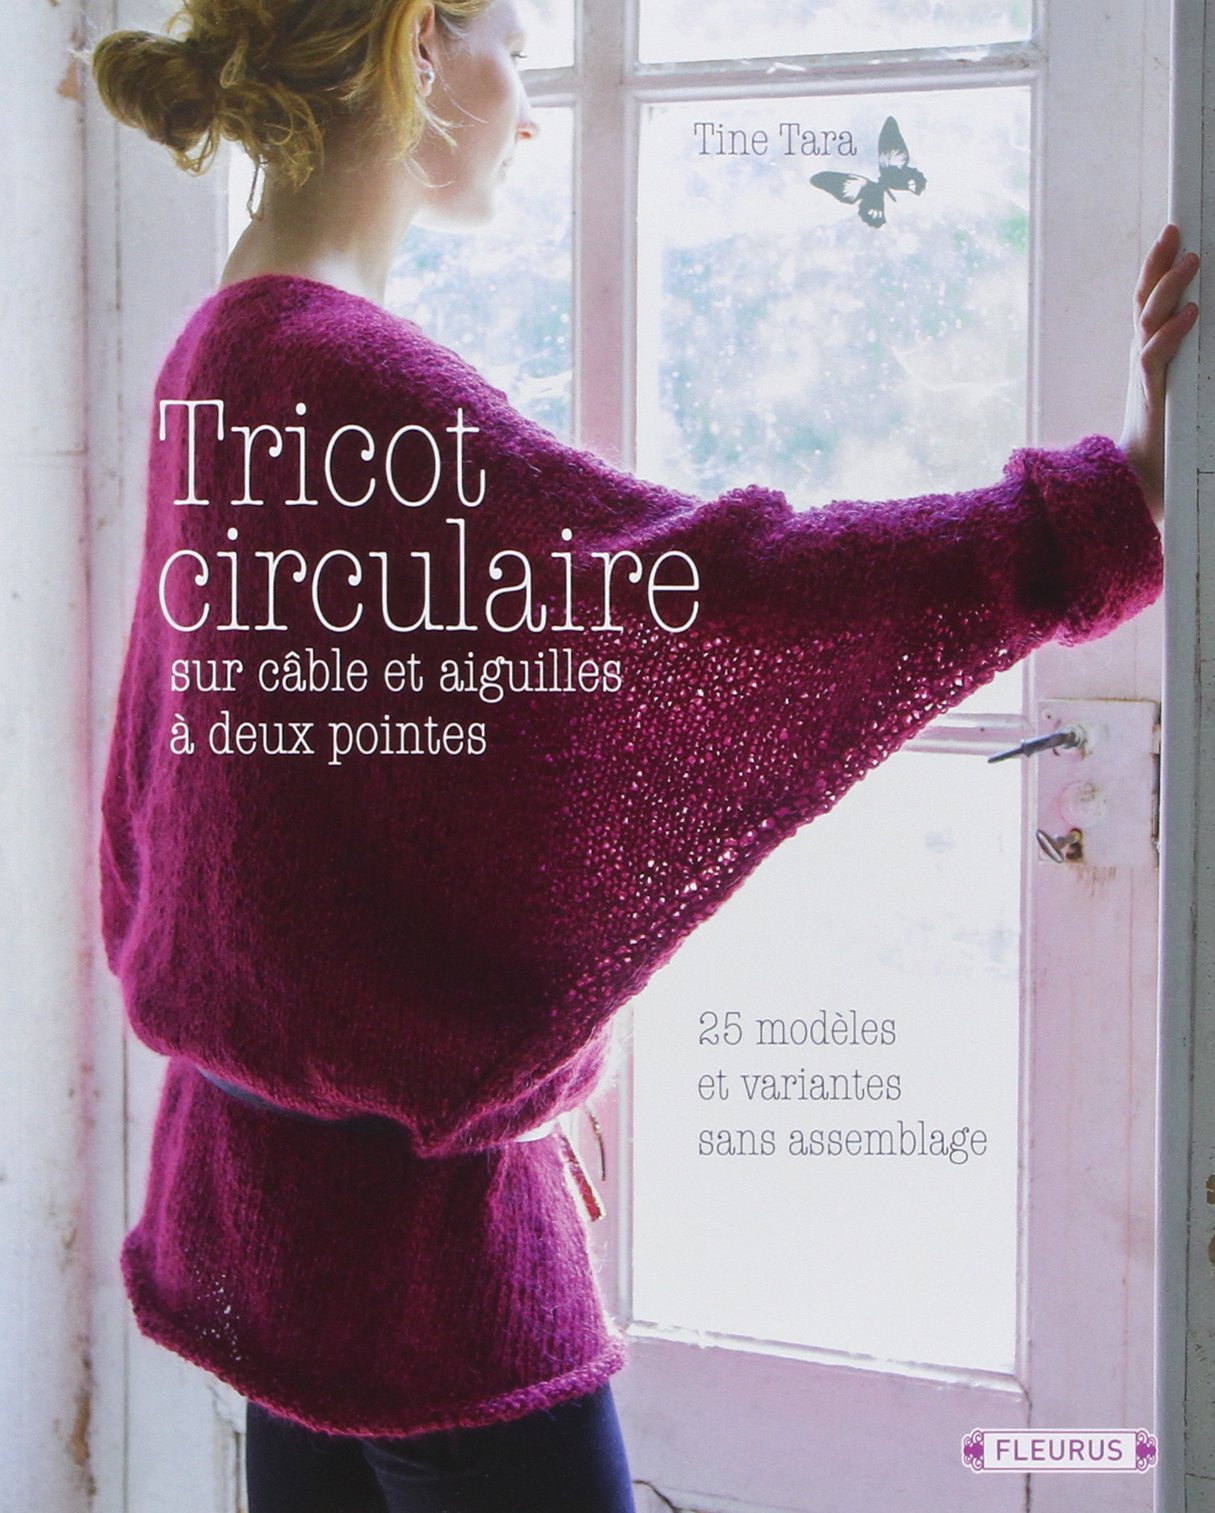 tricoter circulaire